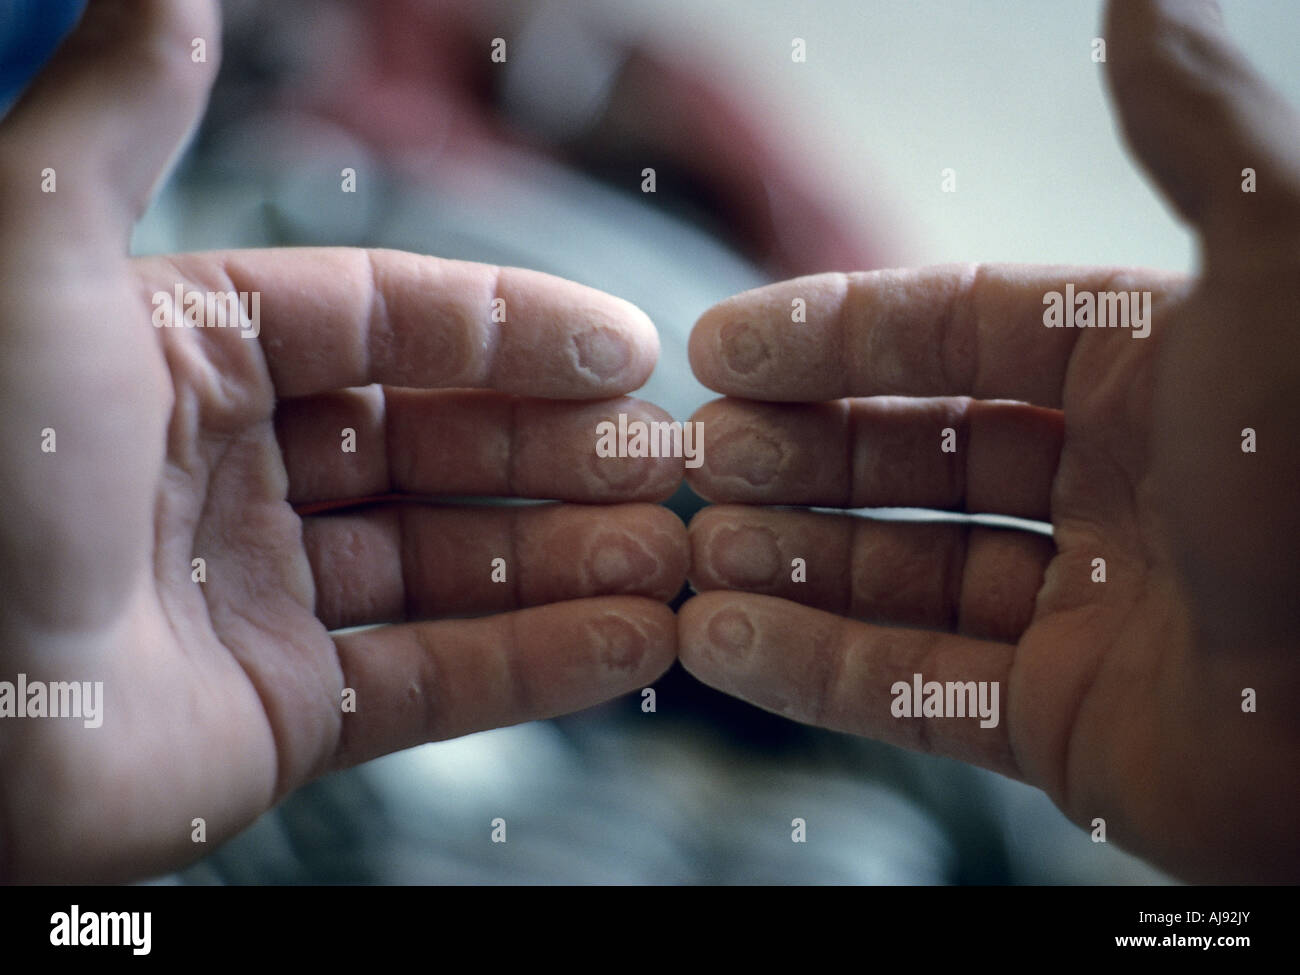 Finger tips raw from rock climbing Stock Photo